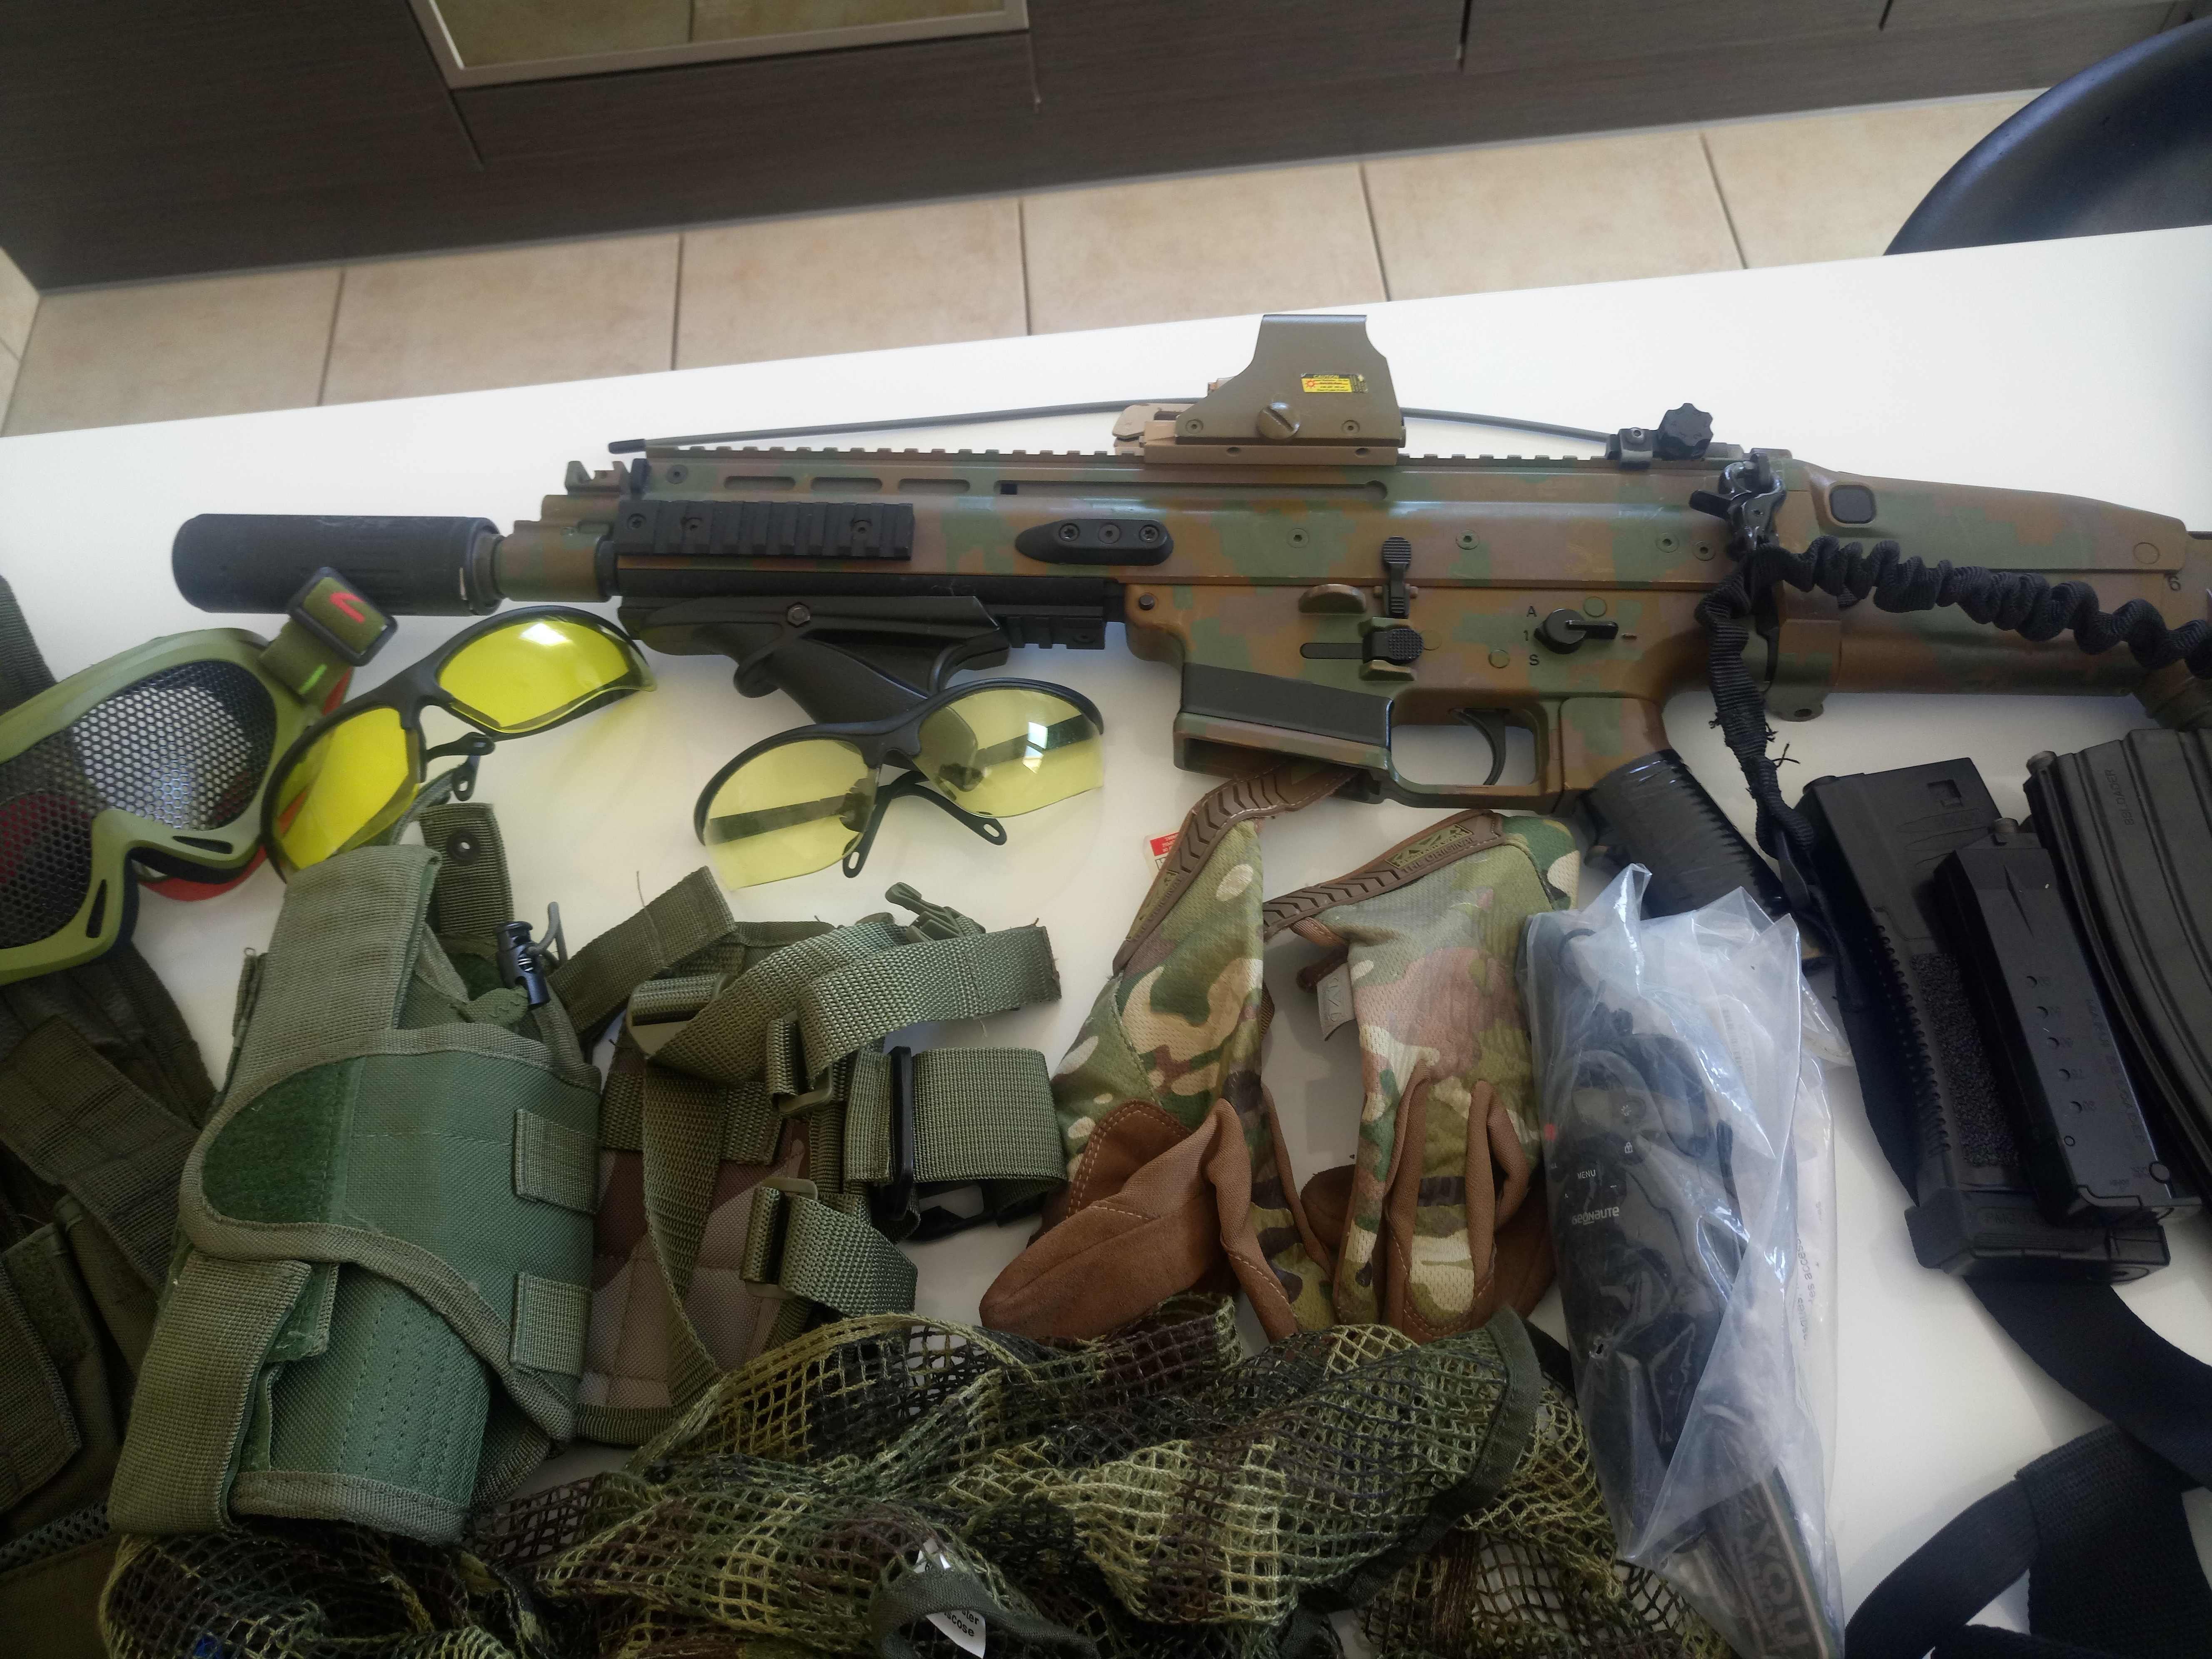 Lot complet airsoft